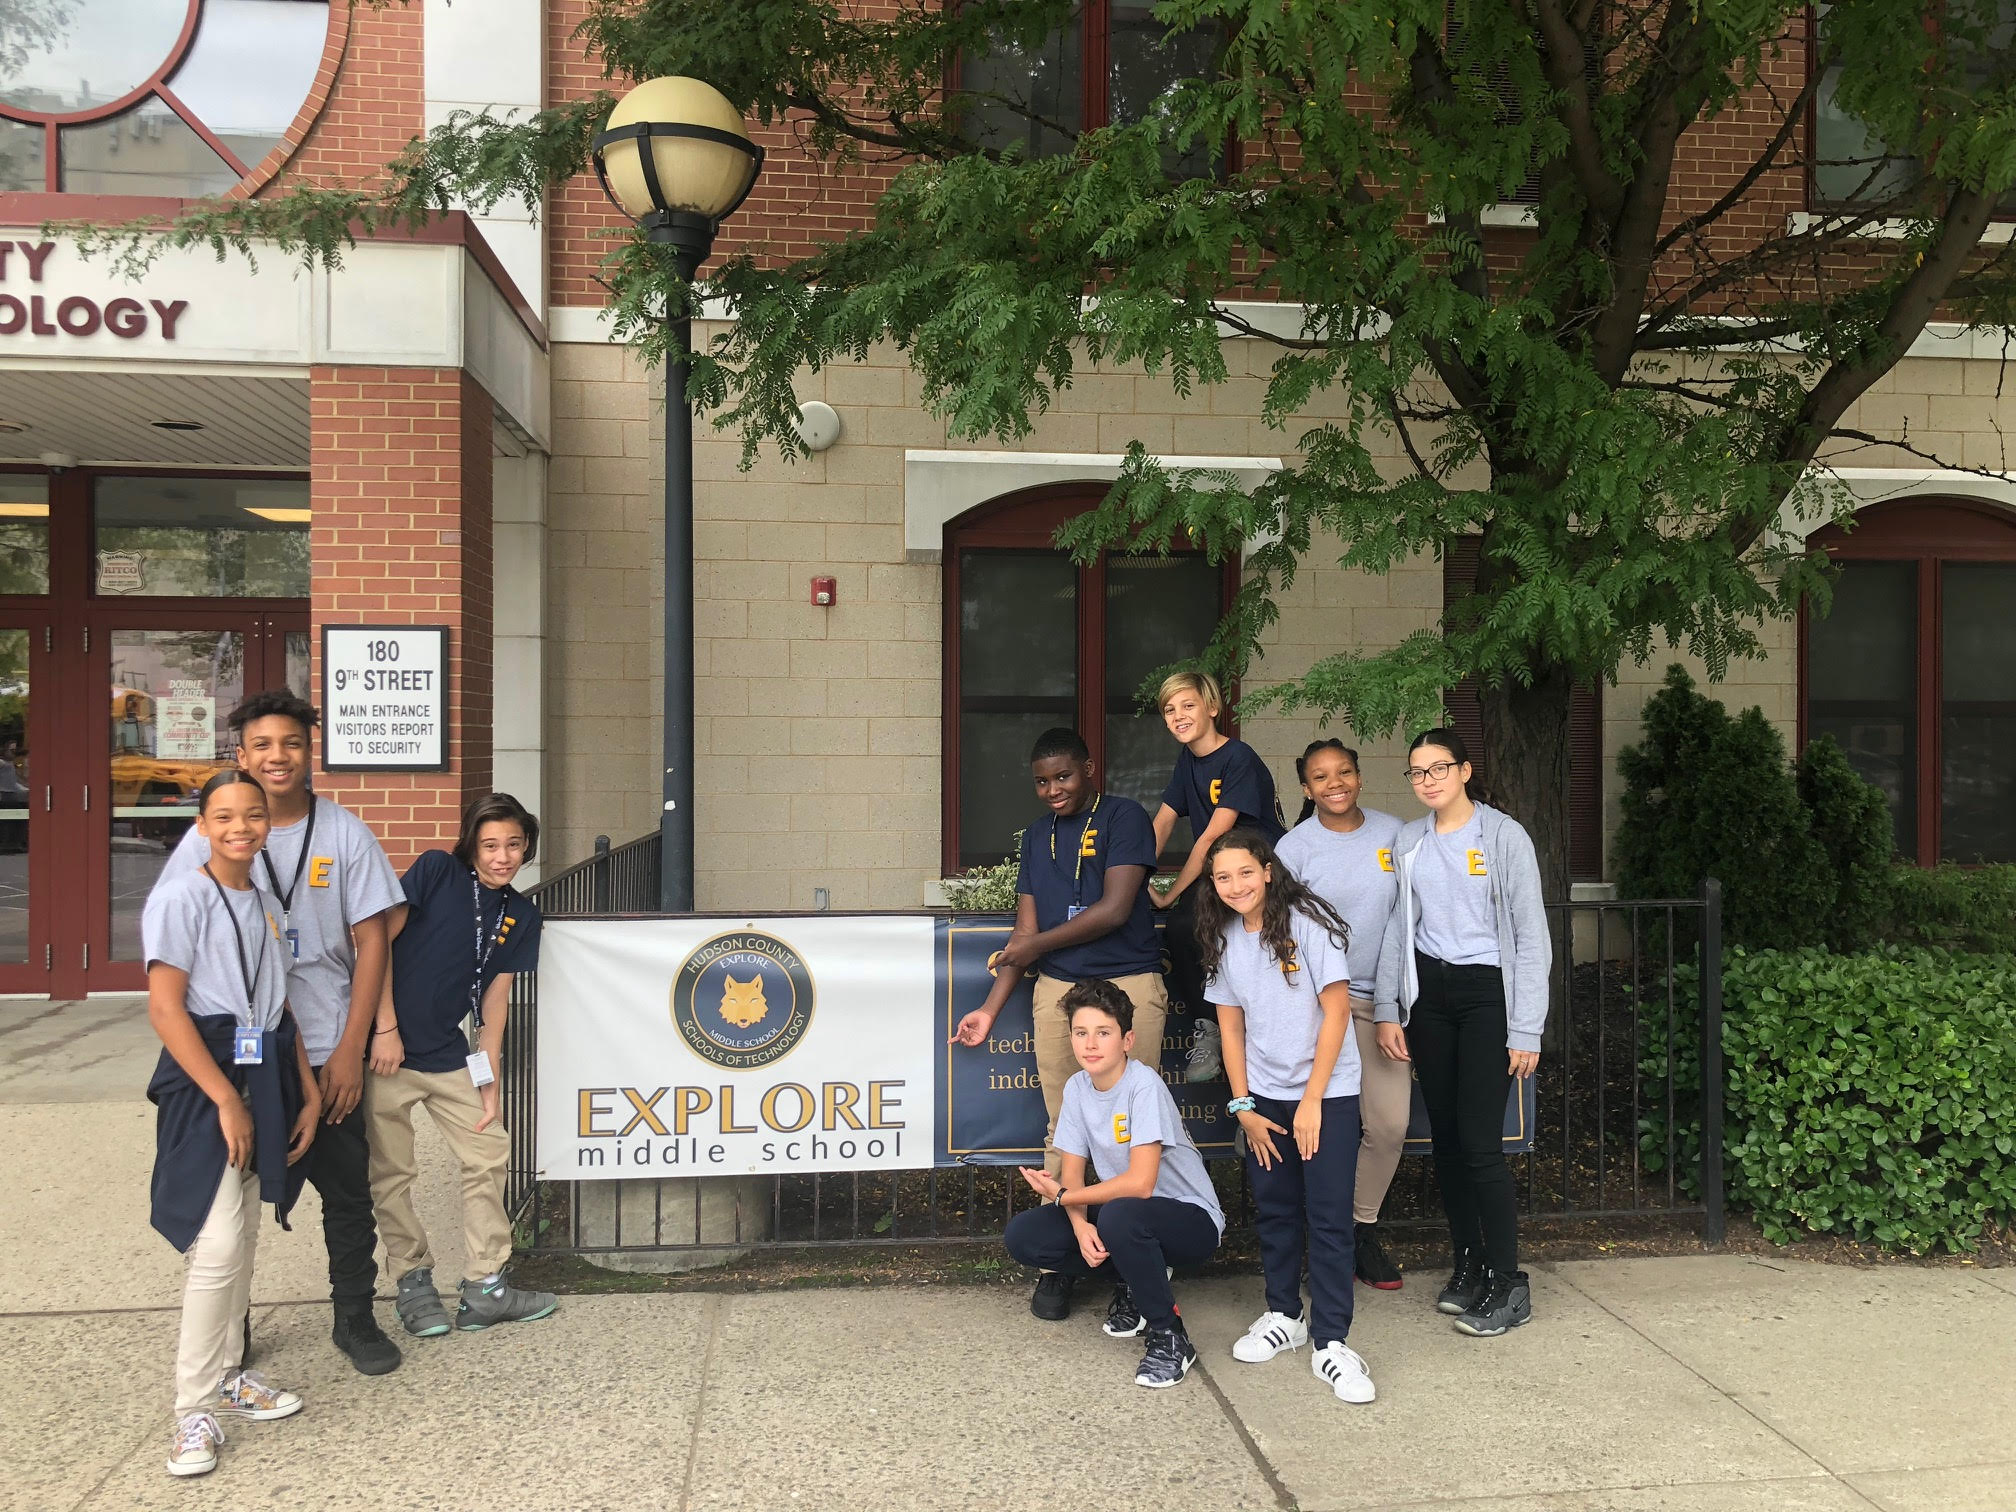 Explore Middle School: Rebranded and Ready to Go!